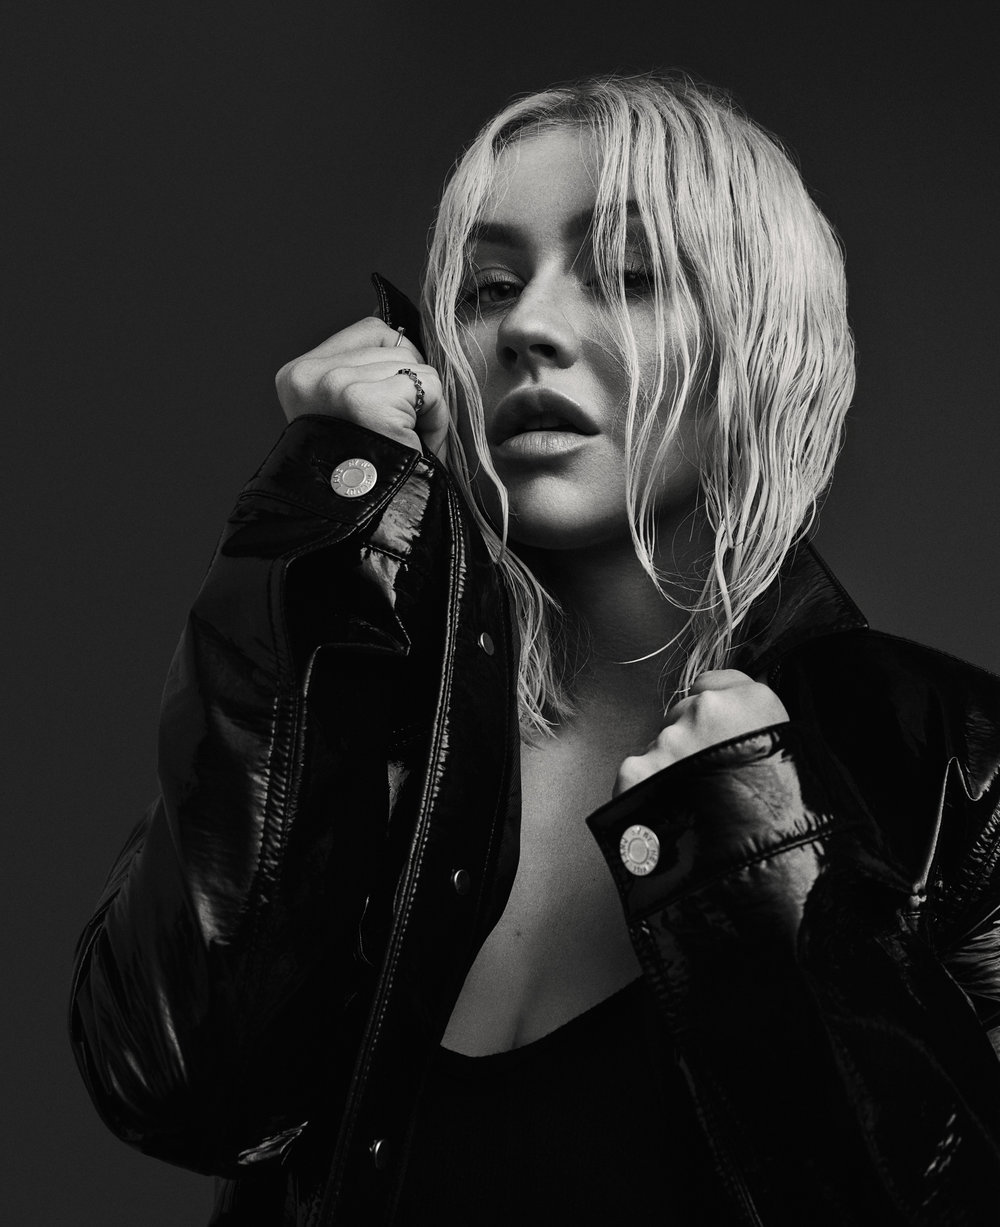 181004_Billboard_ChristinaAguilera_0329.jpg